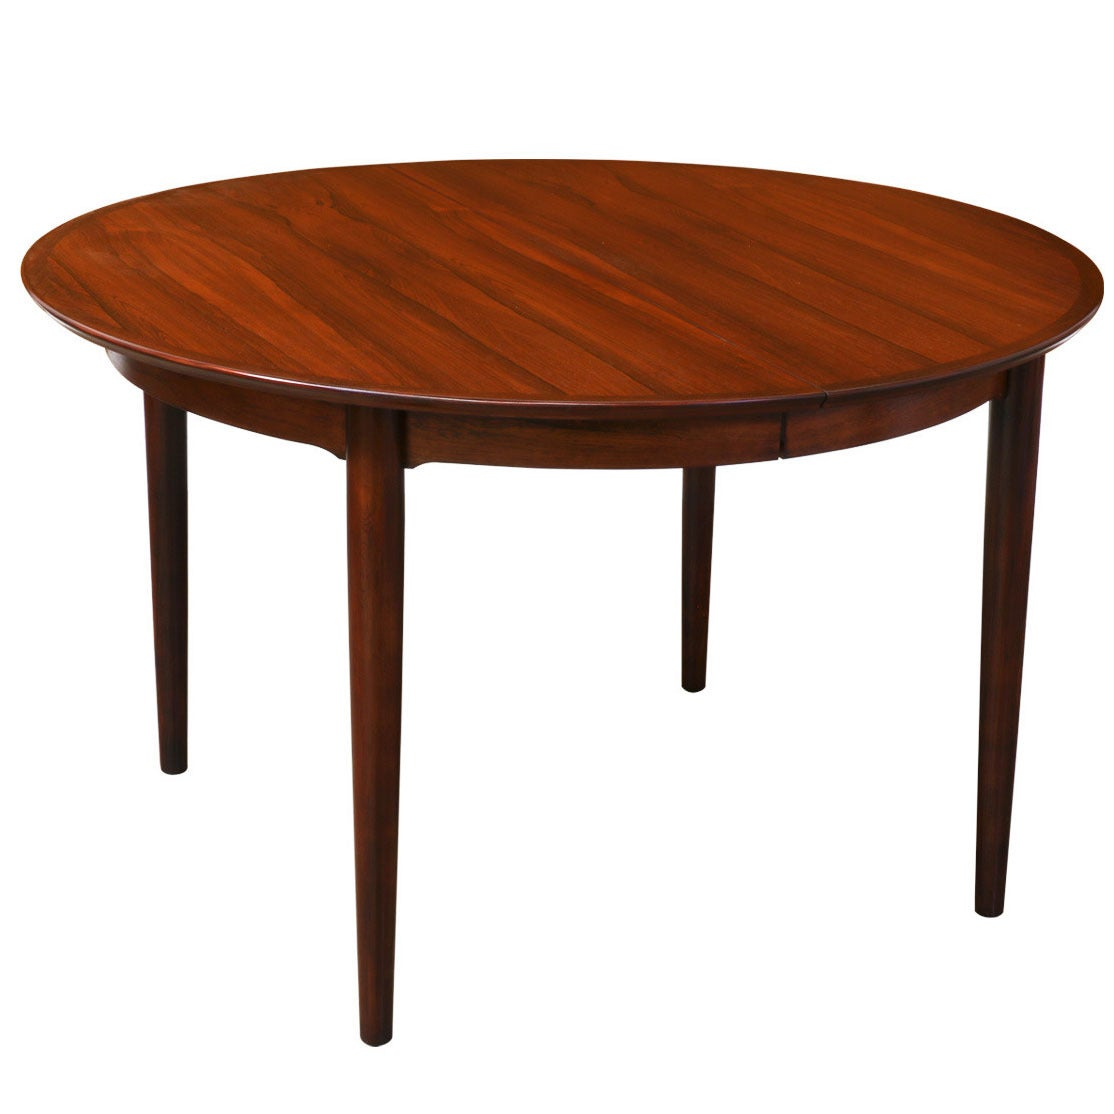 Danish modern rosewood expanding dining table at 1stdibs for Danish modern dining room table